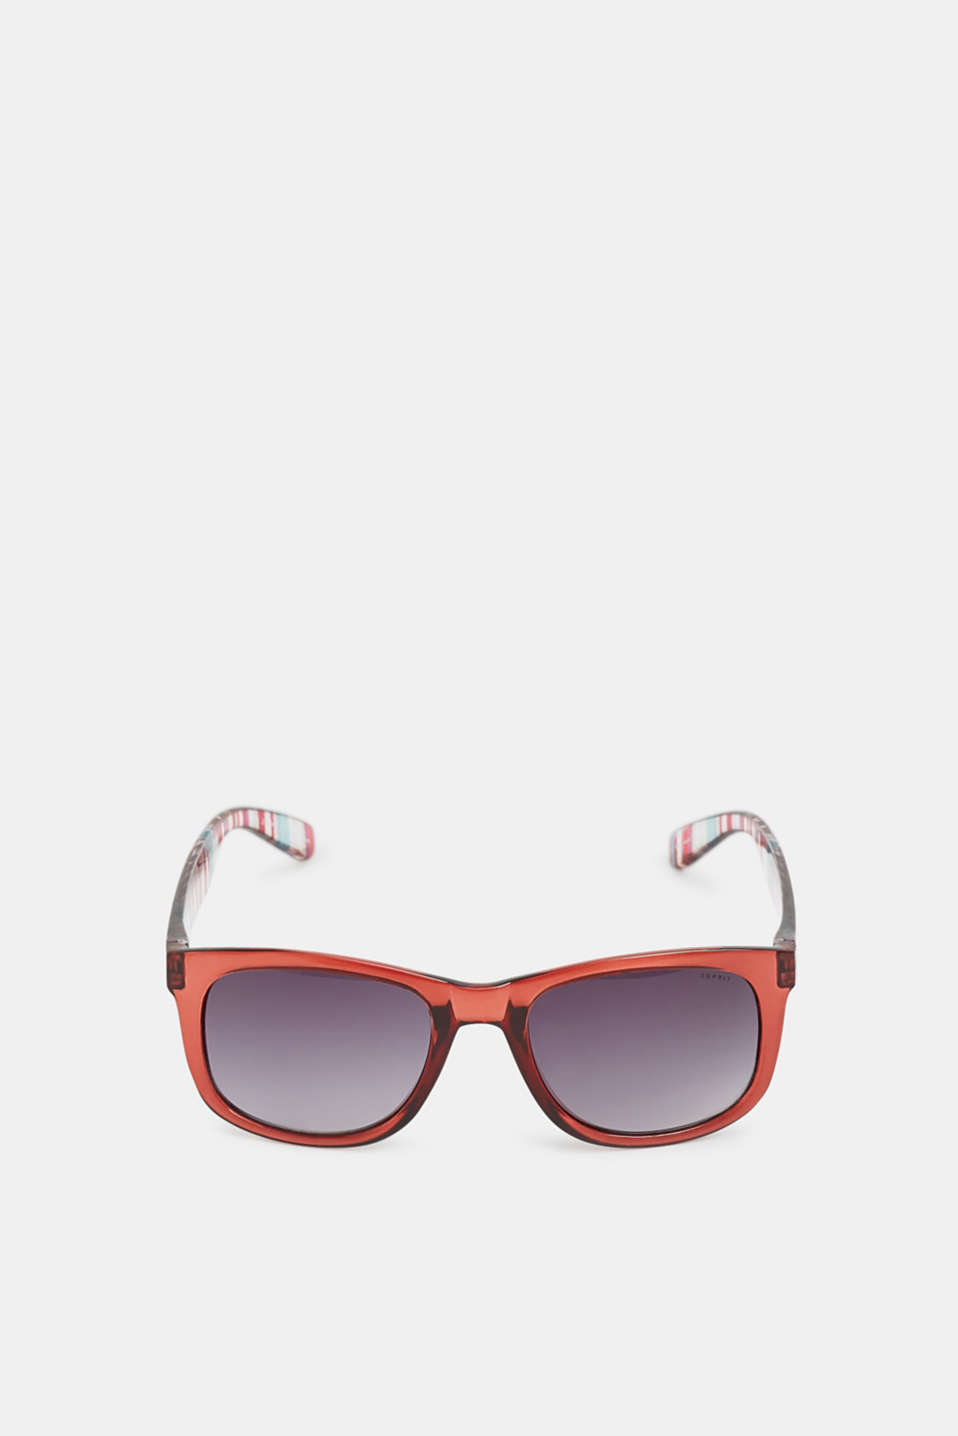 Esprit - Sunglasses with vibrant, striped temples